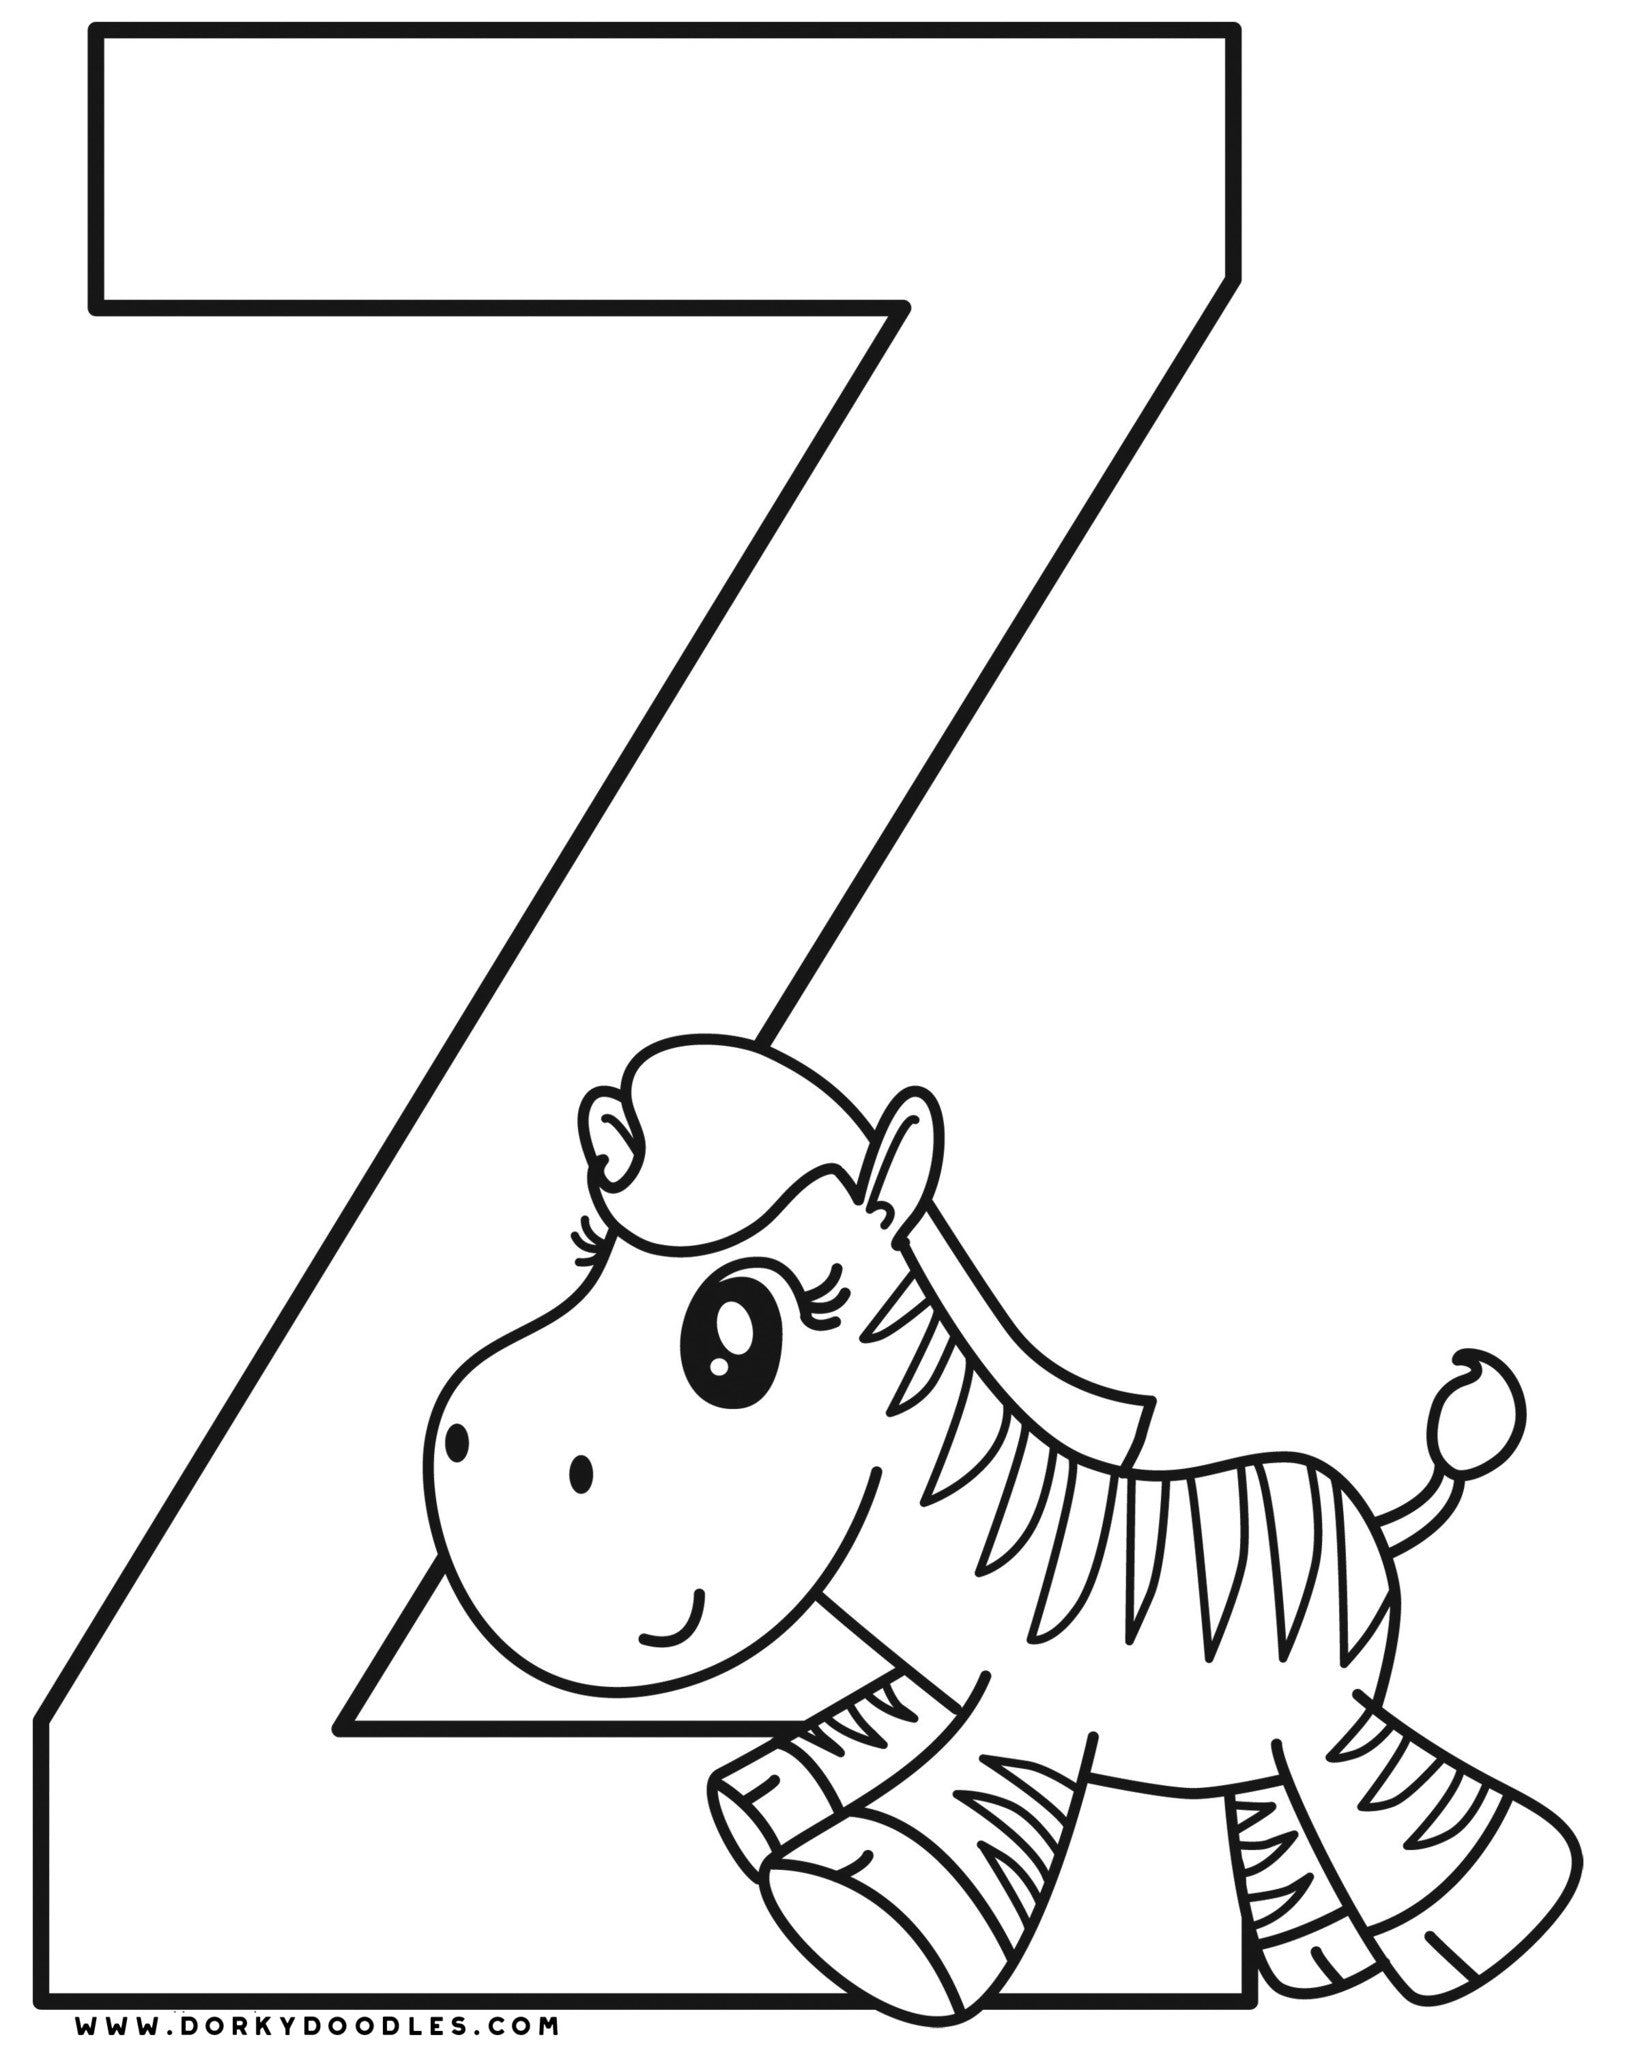 letter z coloring page and writing practice worksheets  u2013 dorky doodles